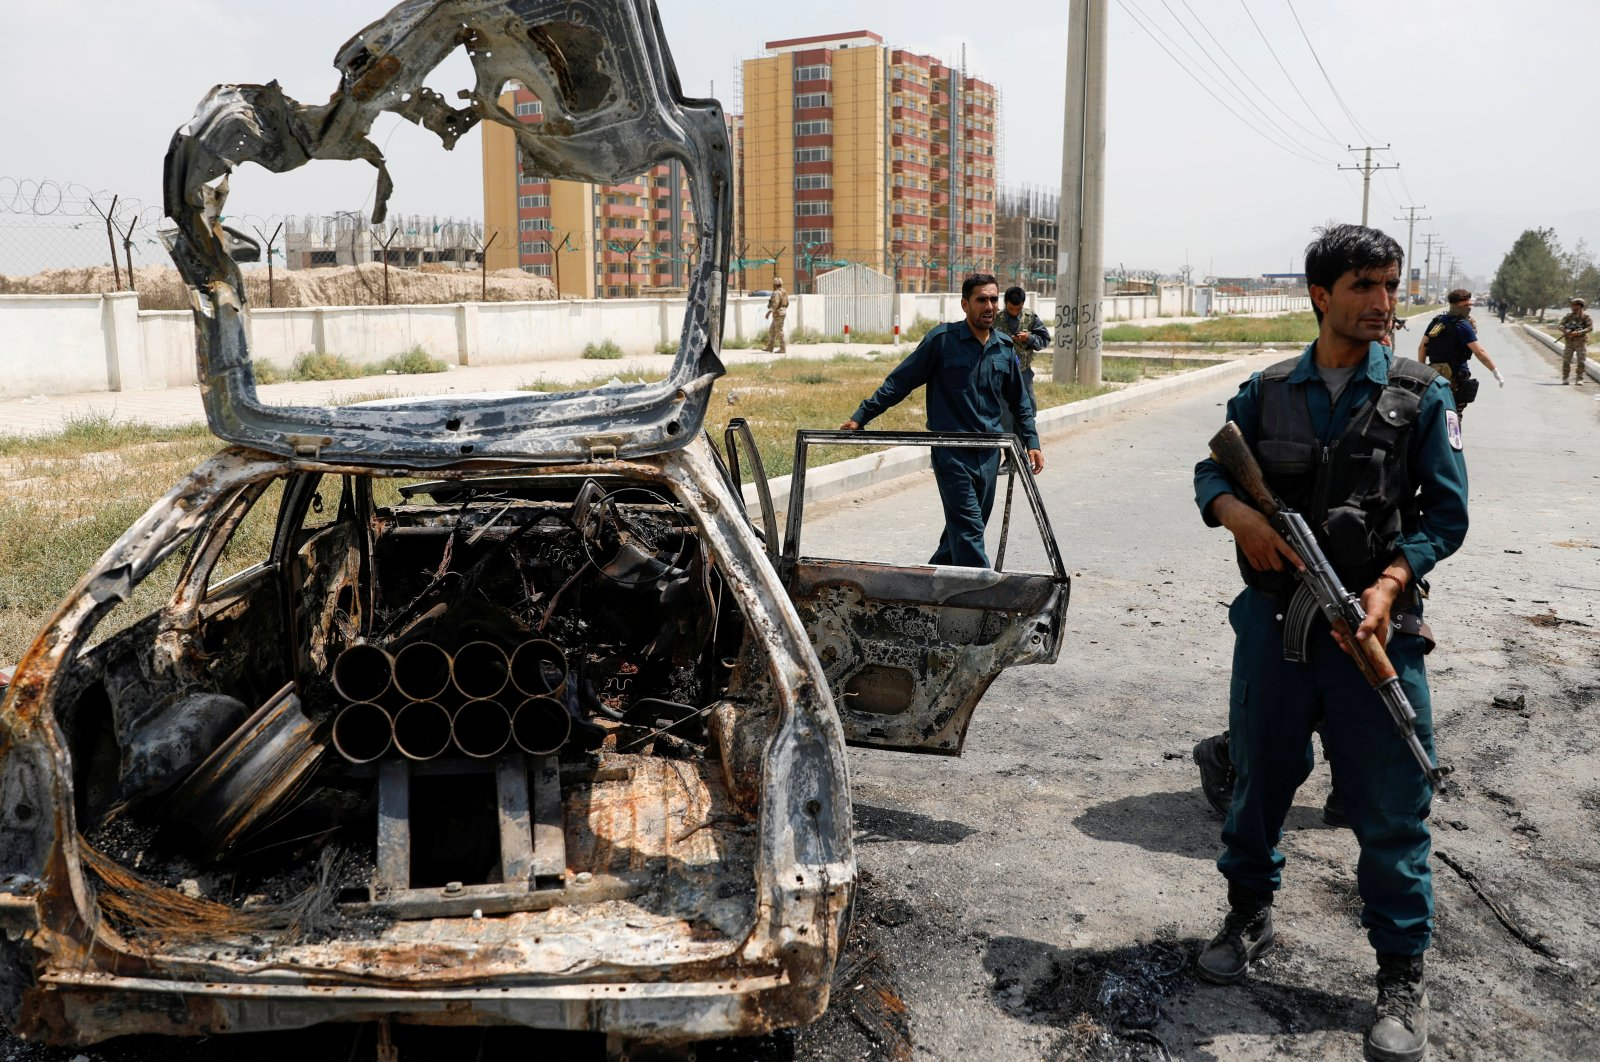 Afghan police officers inspect a vehicle from which insurgents fired rockets, in Kabul, Afghanistan, Aug. 18, 2020. Reuters Photo)